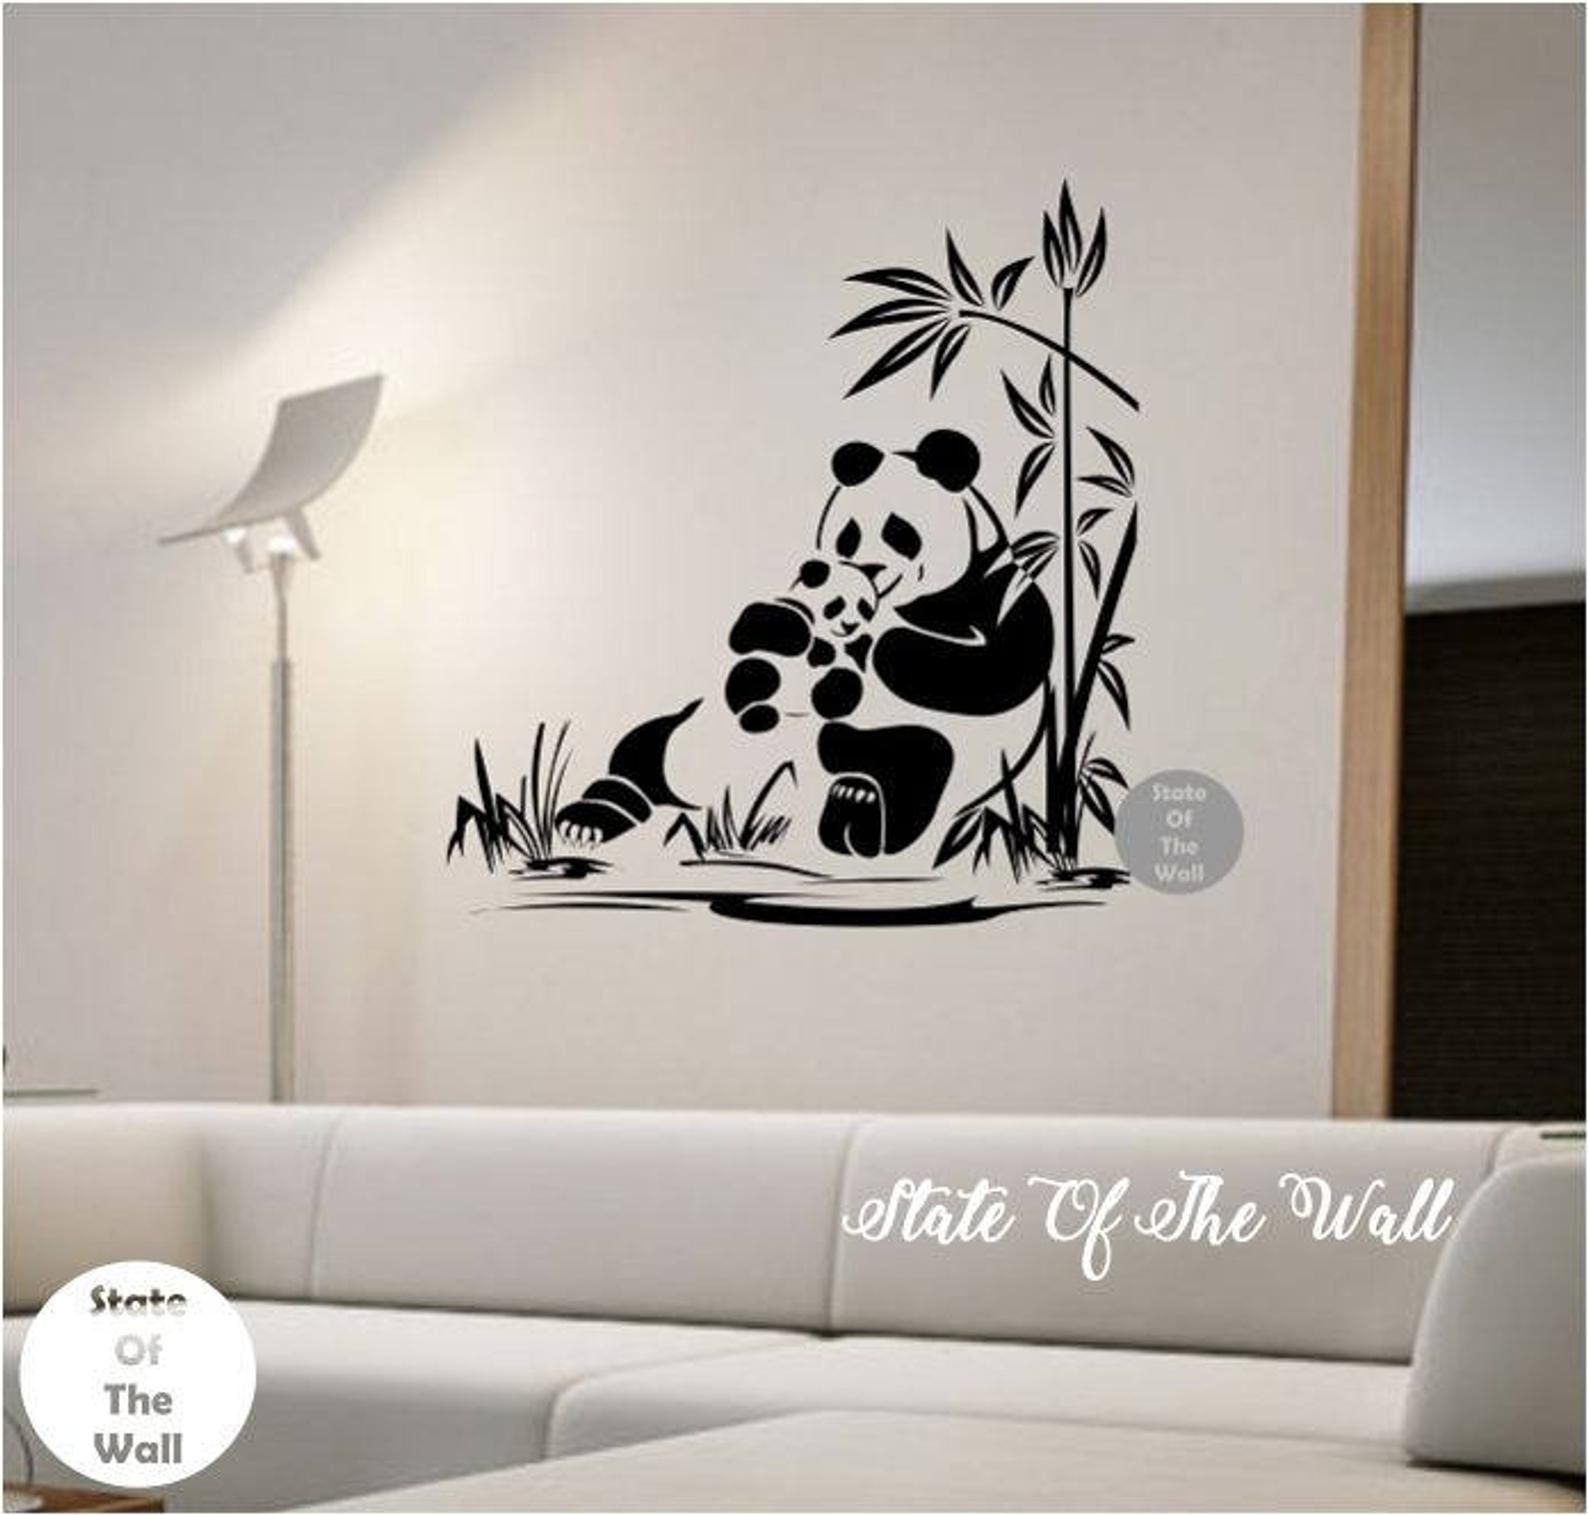 Panda Wall Decal Panda Family Sticker Art Decor Bedroom Design